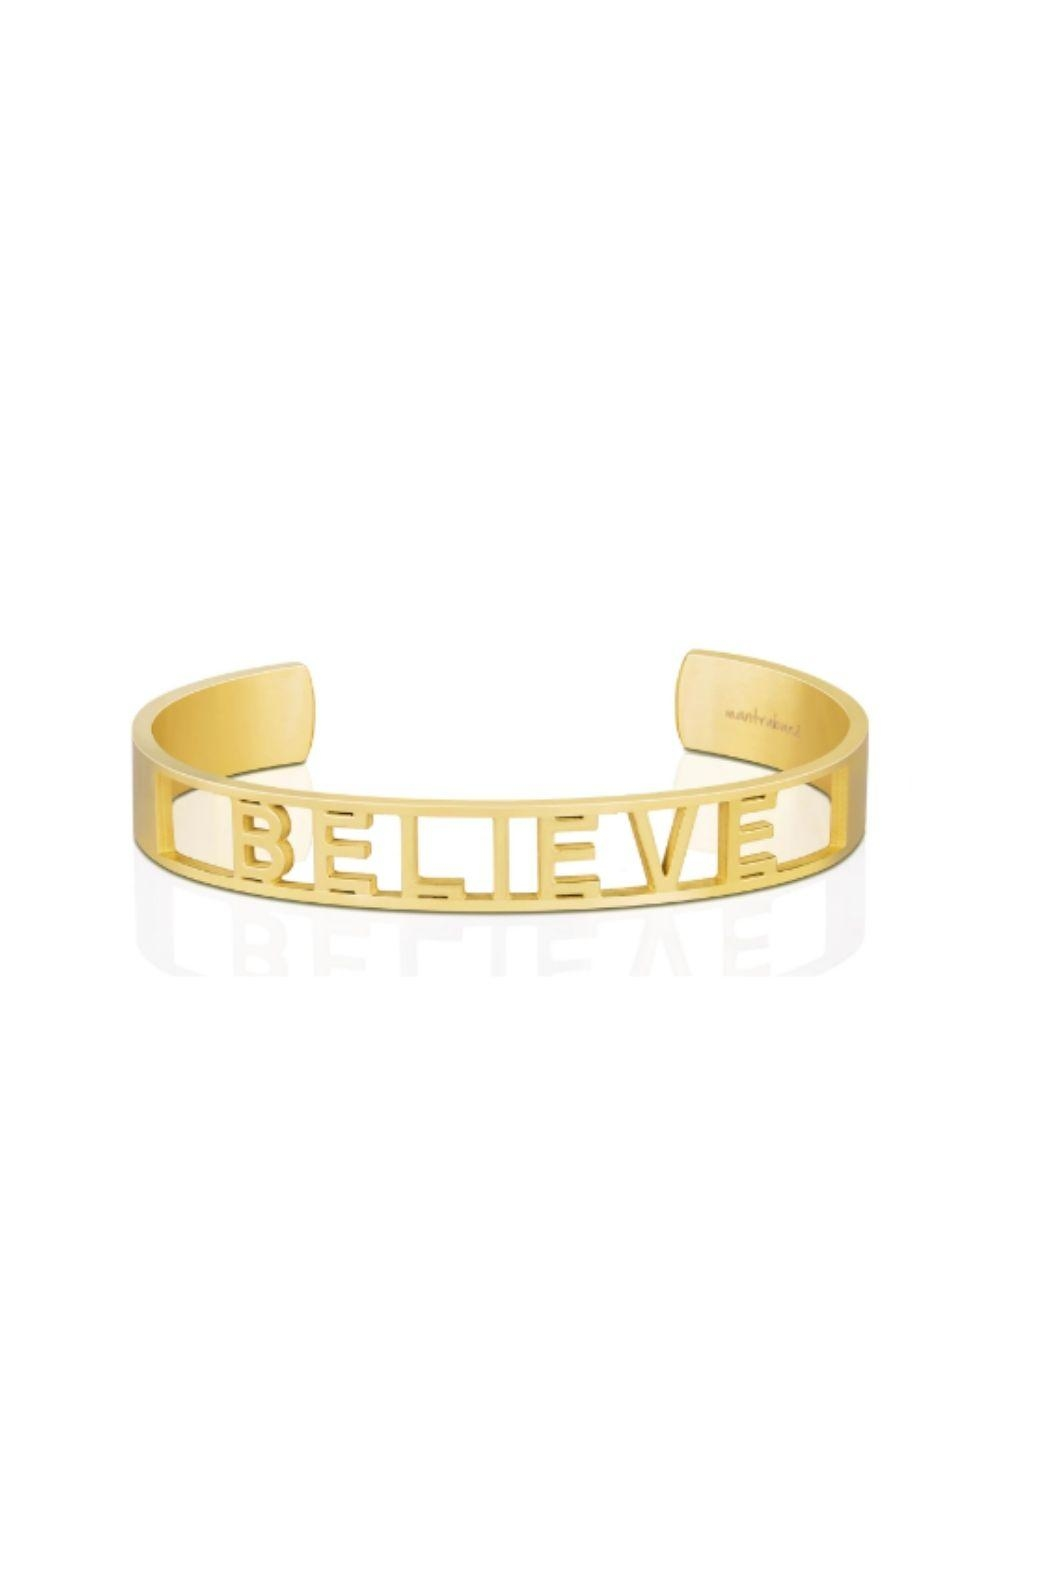 Mantraband Believe  Cuff Gold - Main Image